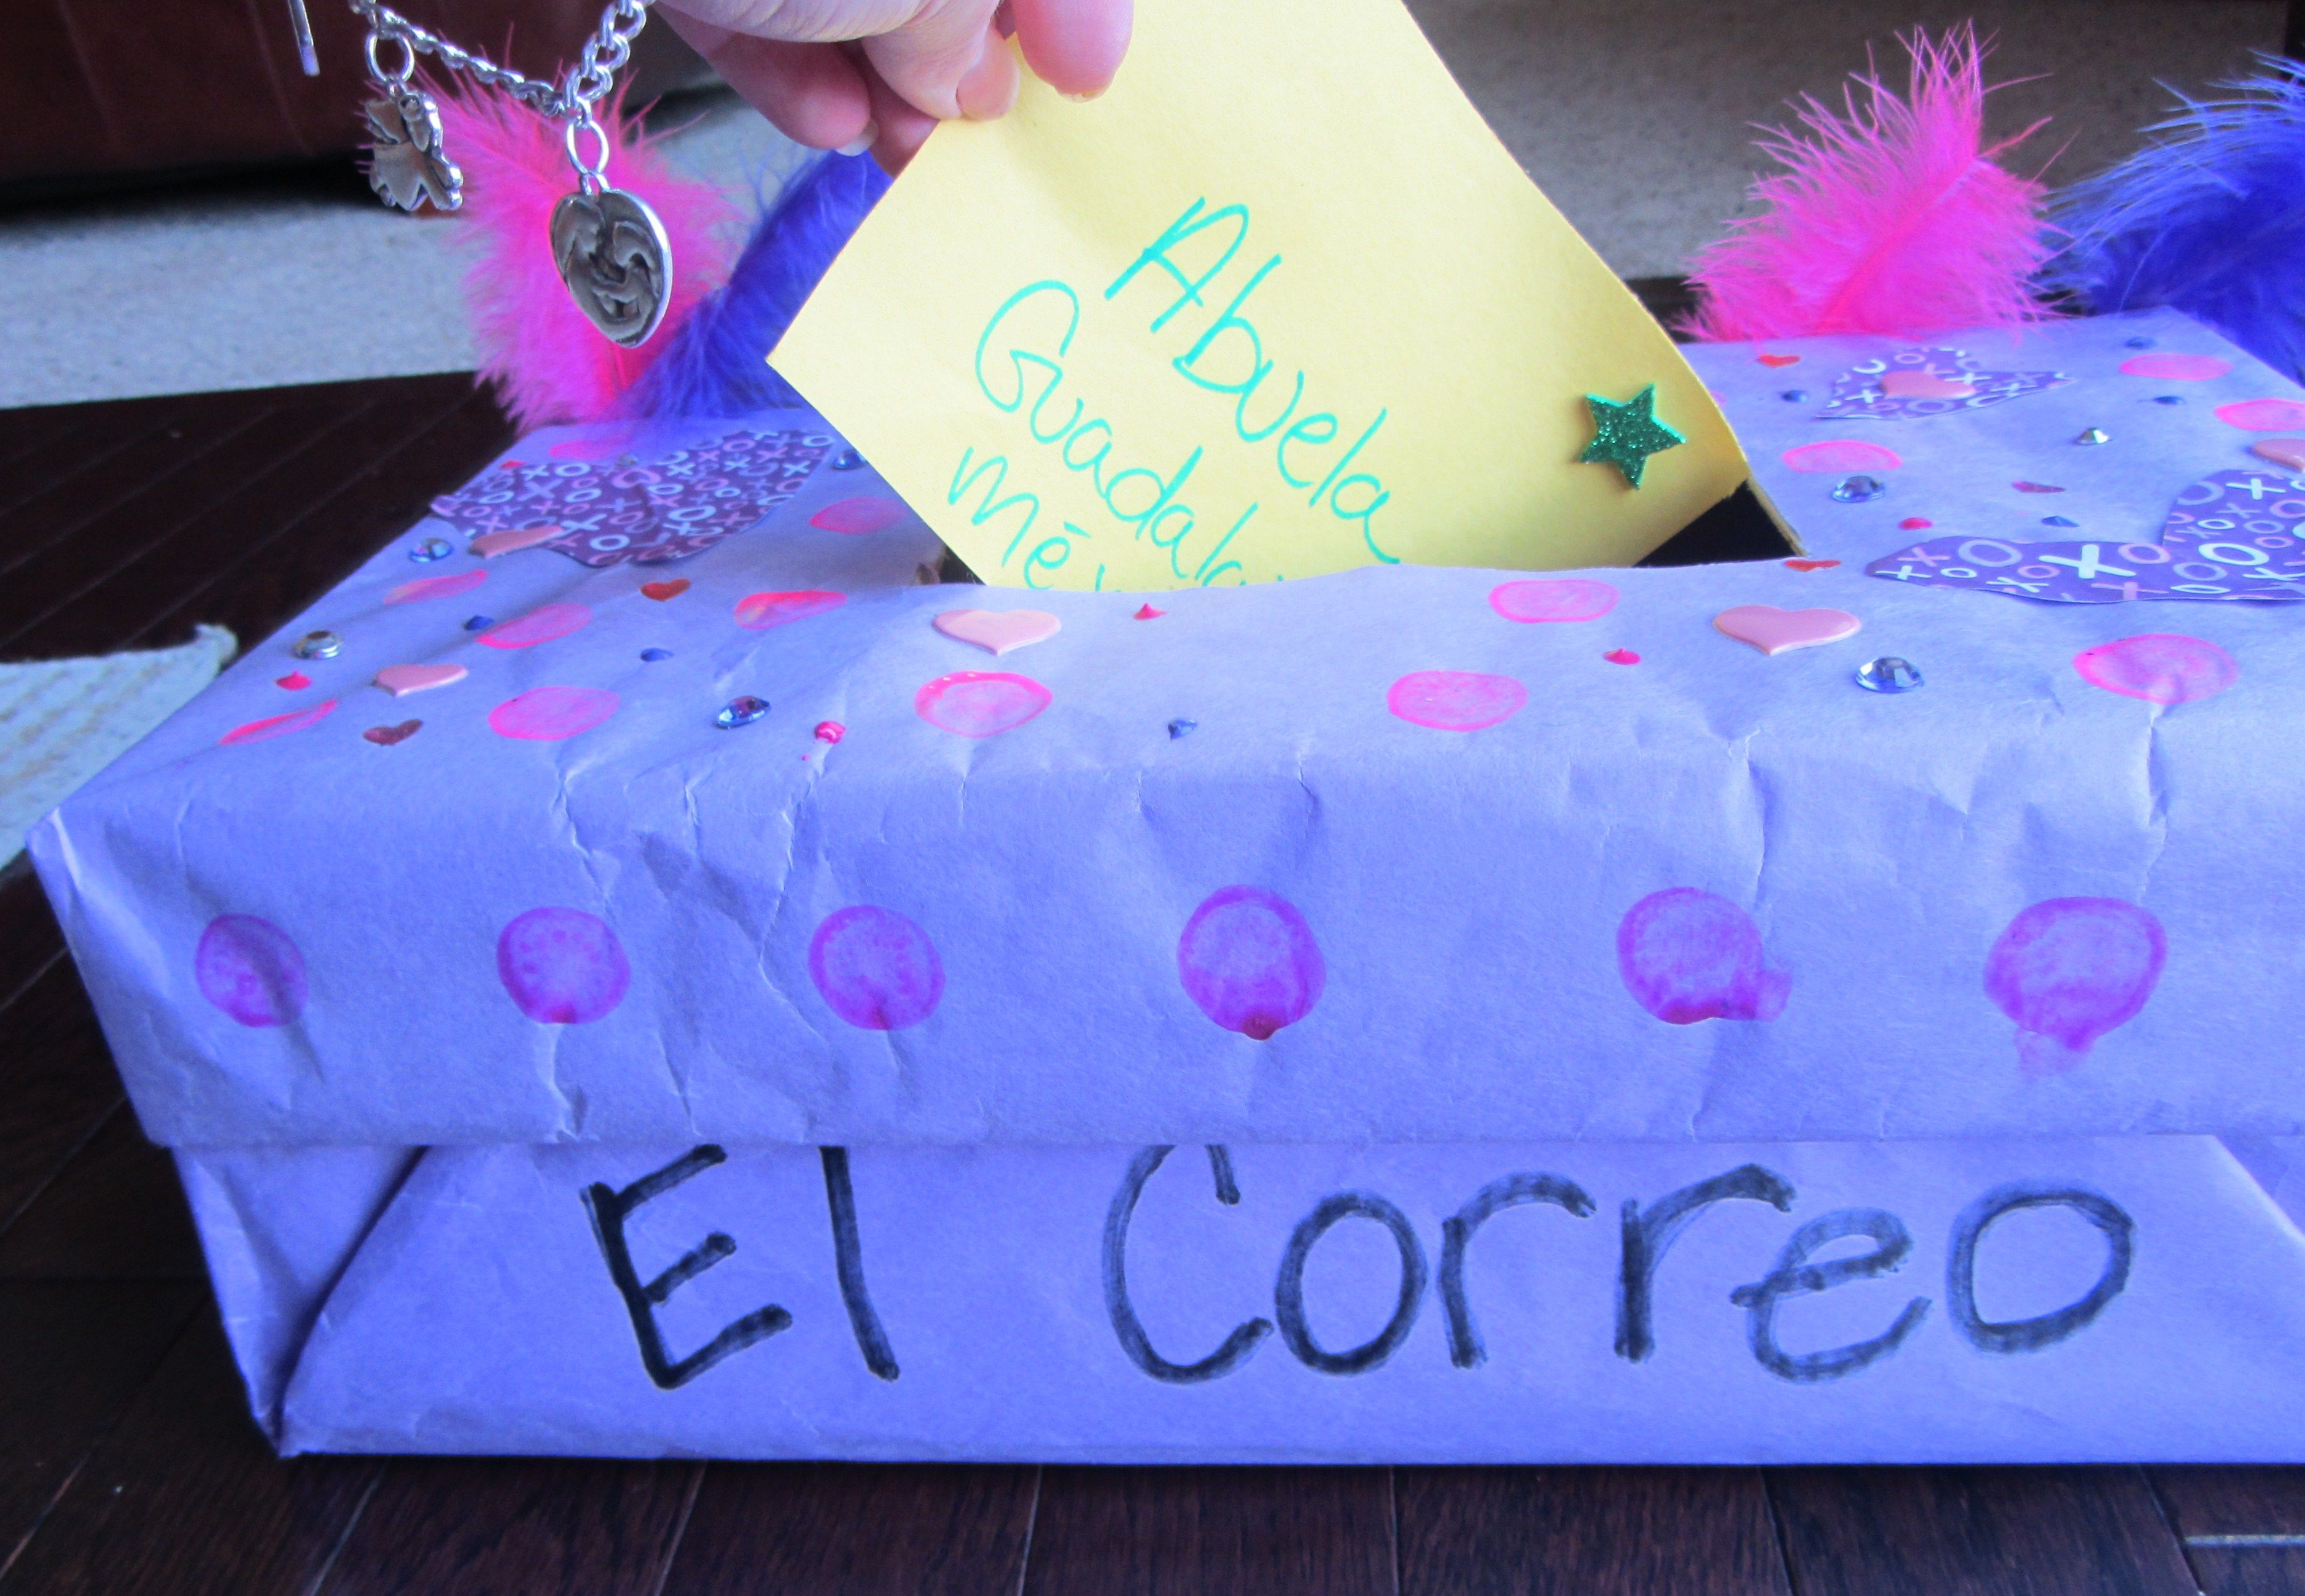 El #correo: Post office #activity for kids learning #Spanish